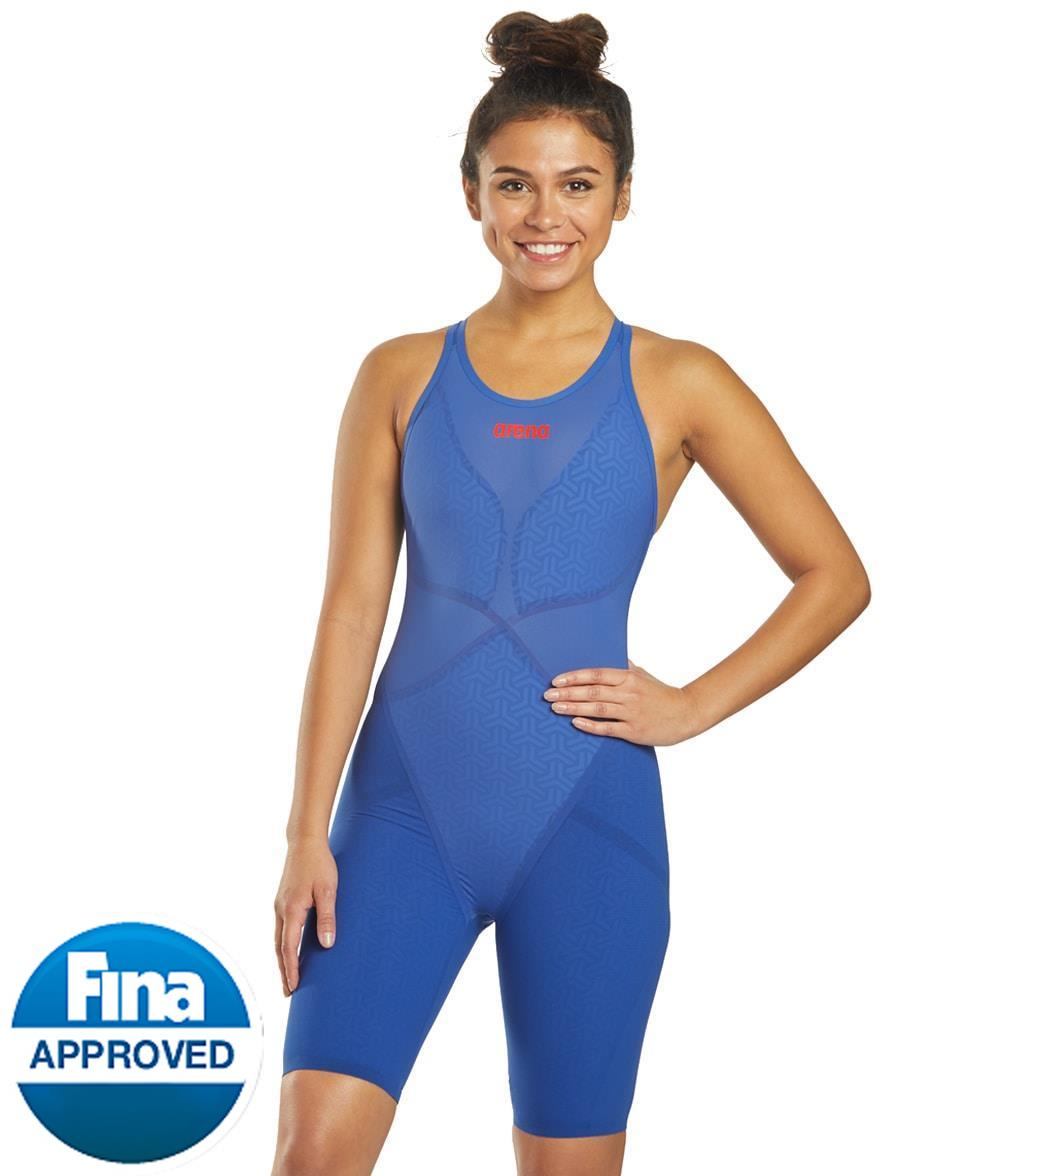 Arena Women's Powerskin Carbon Glide Tech Suit Swimsuit